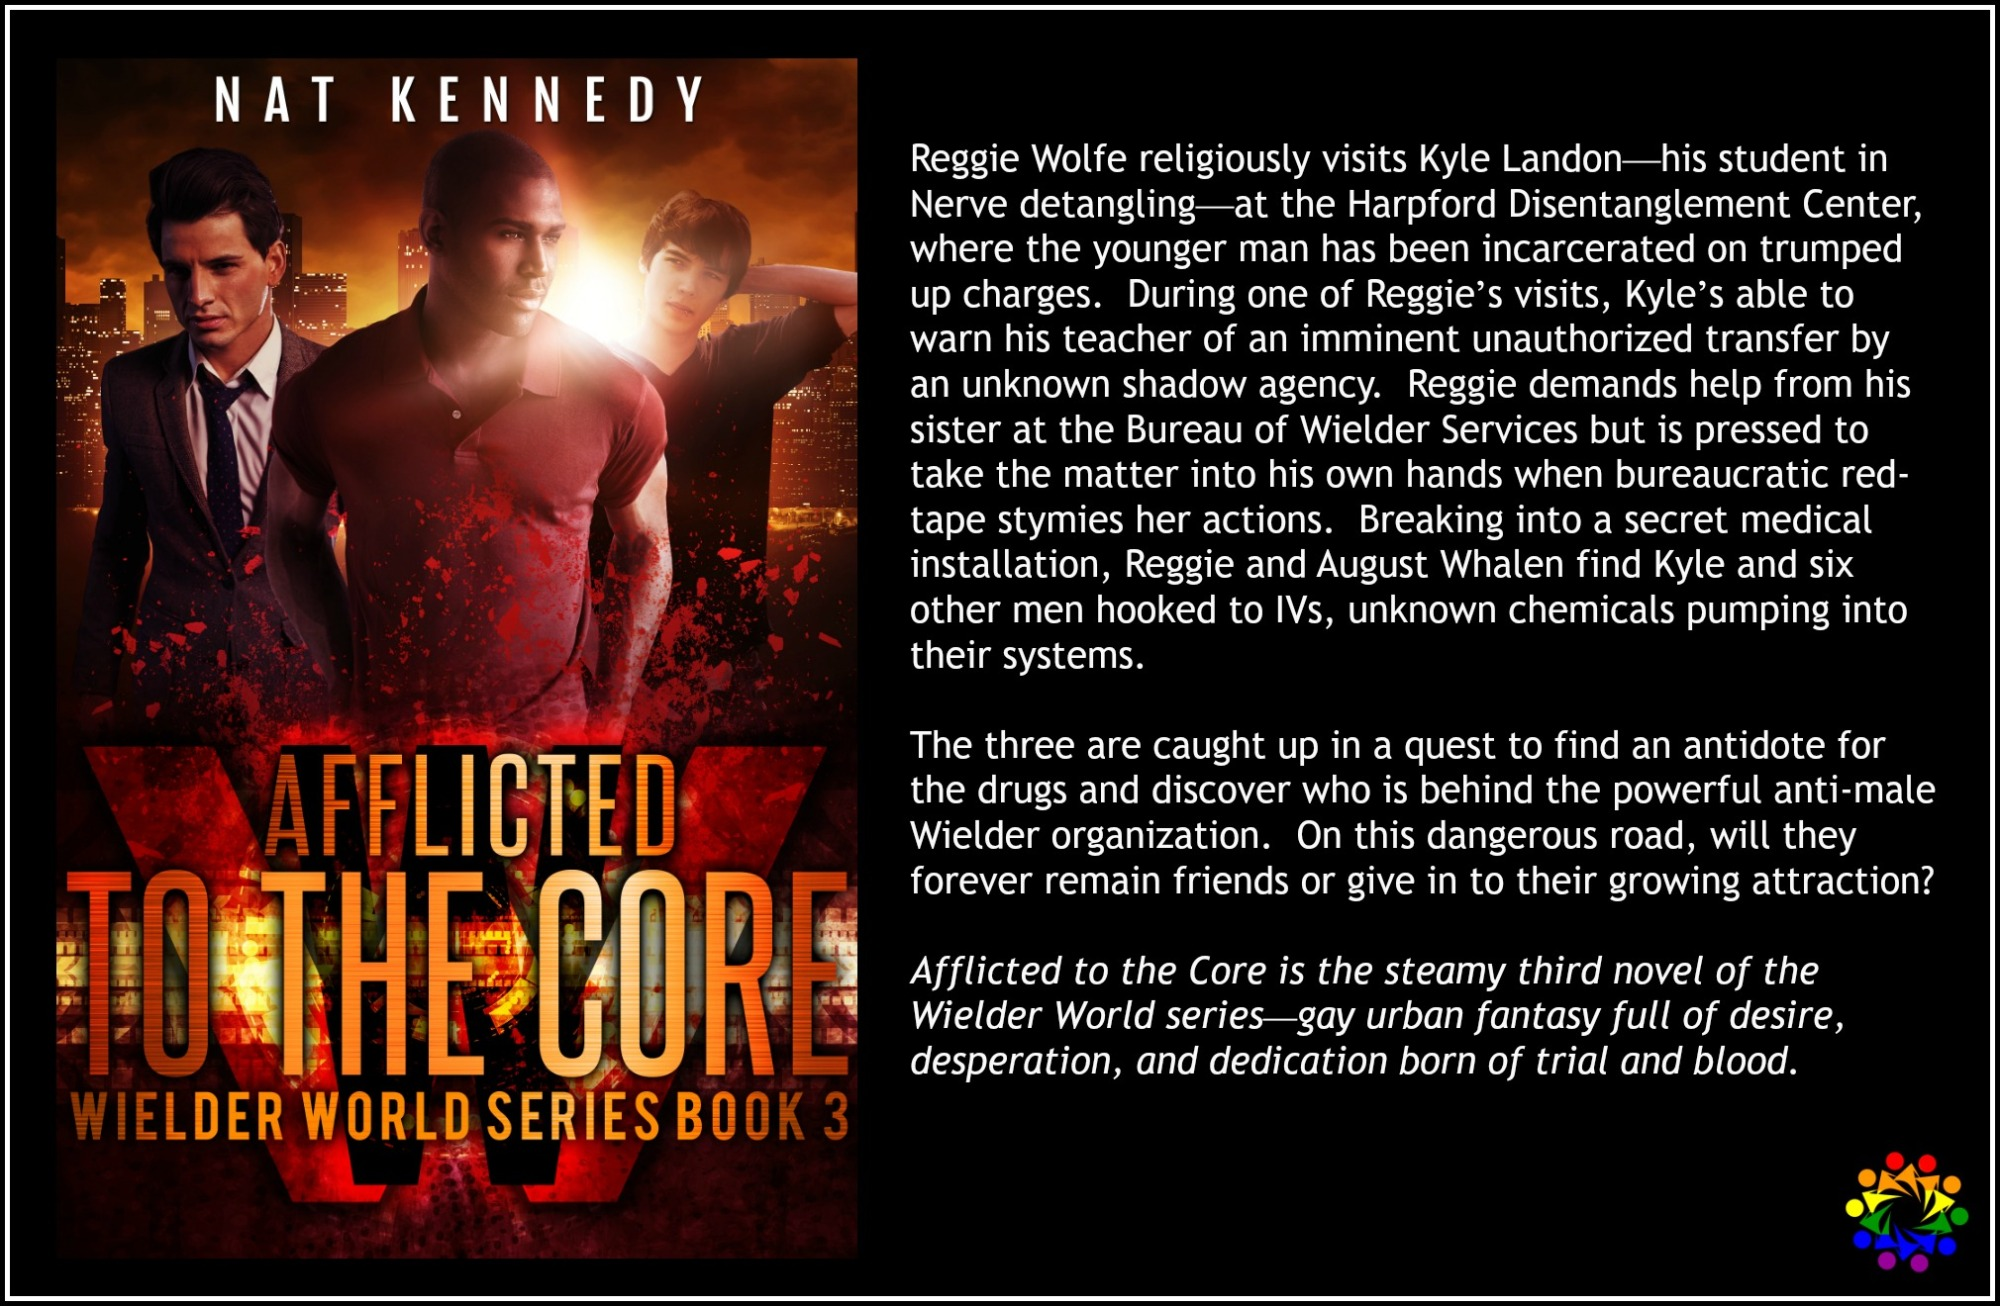 AFFLICTED TO THE CORE wielder world series nat kennedy MM urban fantasy